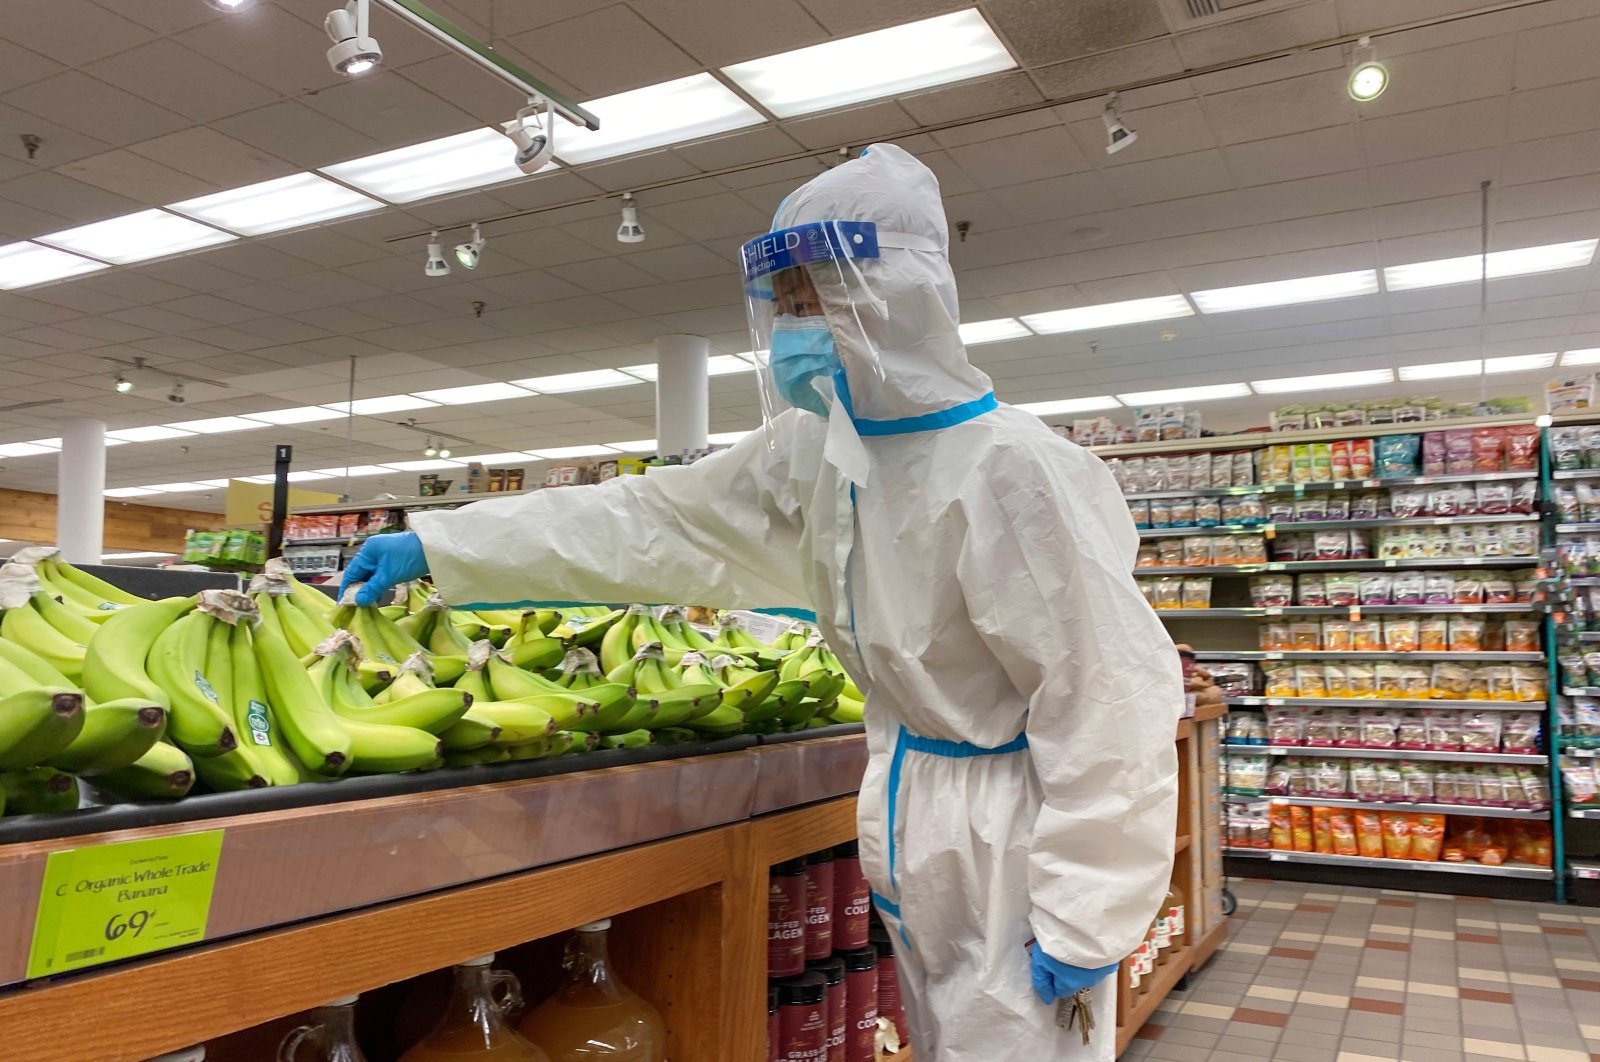 A shopper wearing a personal protective suit, mask and face shield shops for bananas at a Whole Foods Market during the outbreak of the coronavirus disease (COVID-19), in Pasadena, California, Jan. 20, 2021. (Reuters Photo)